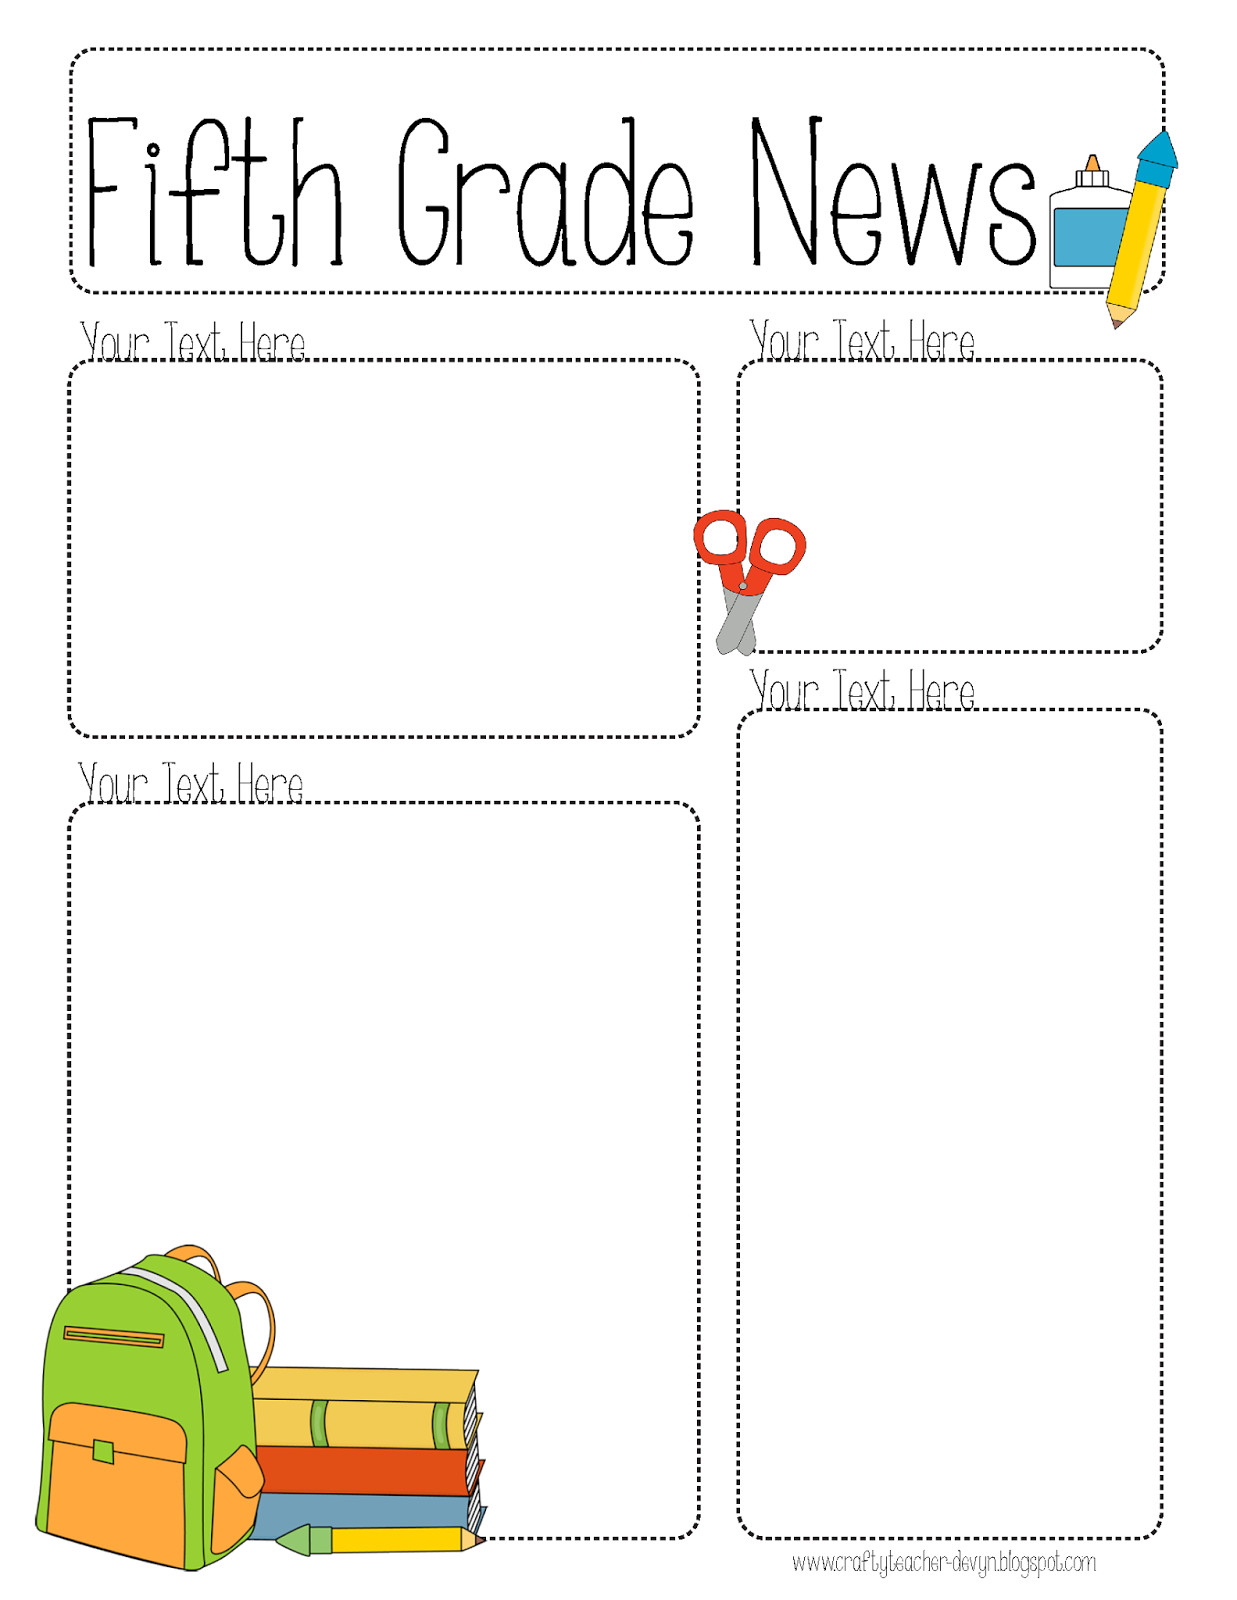 Newsletter Templates for Teachers Pletely Editable Newsletter for All Grades